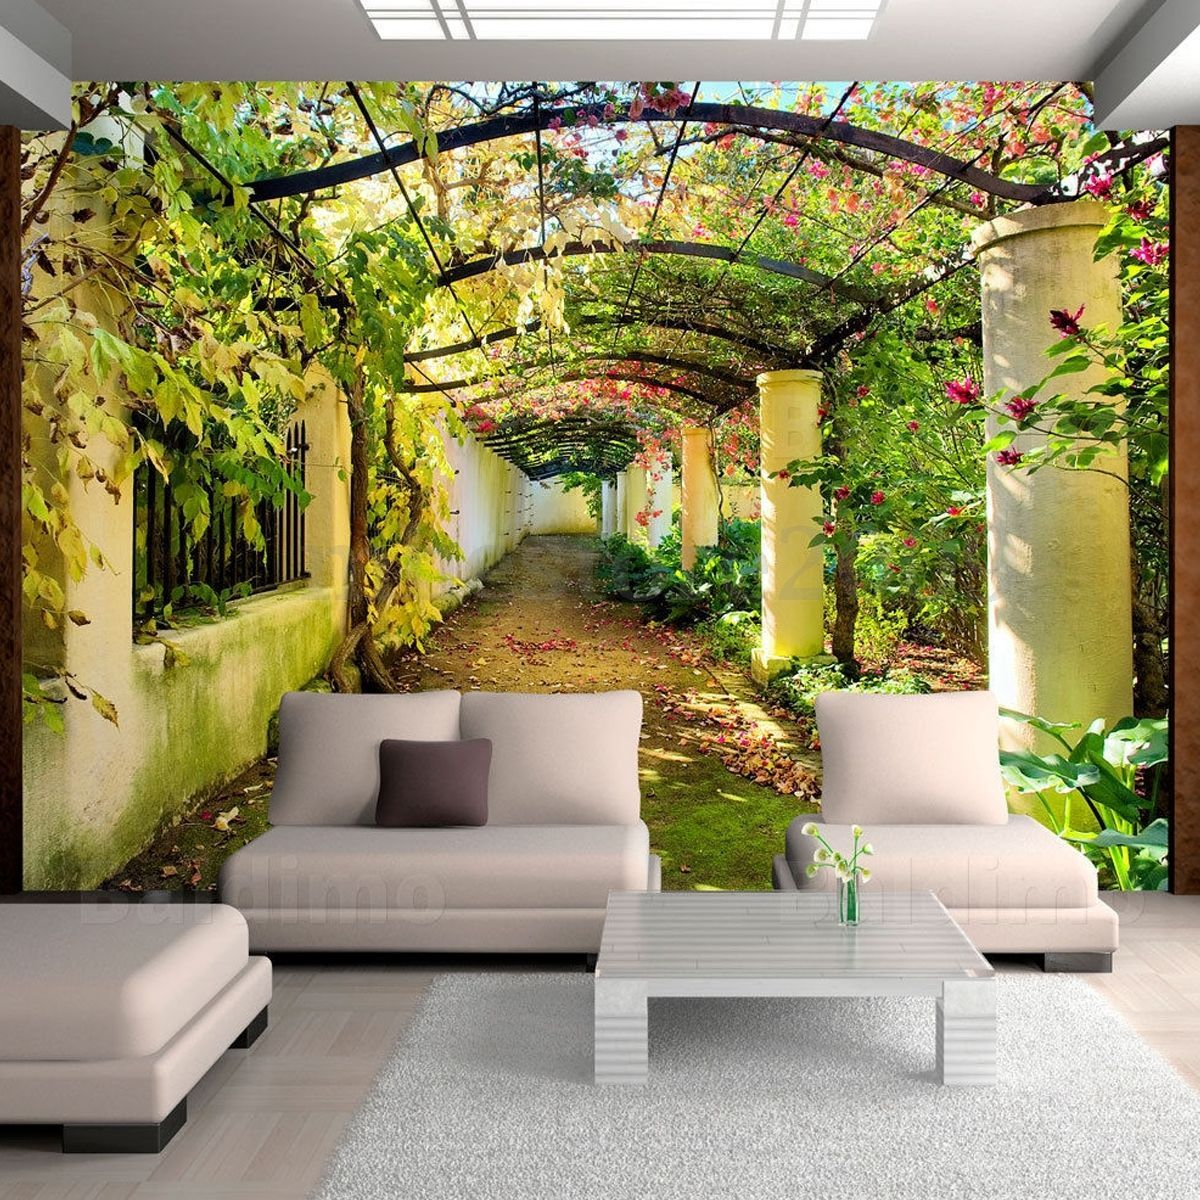 3D Vintage Alley Wallpaper Sticker Living Room Photo Wall